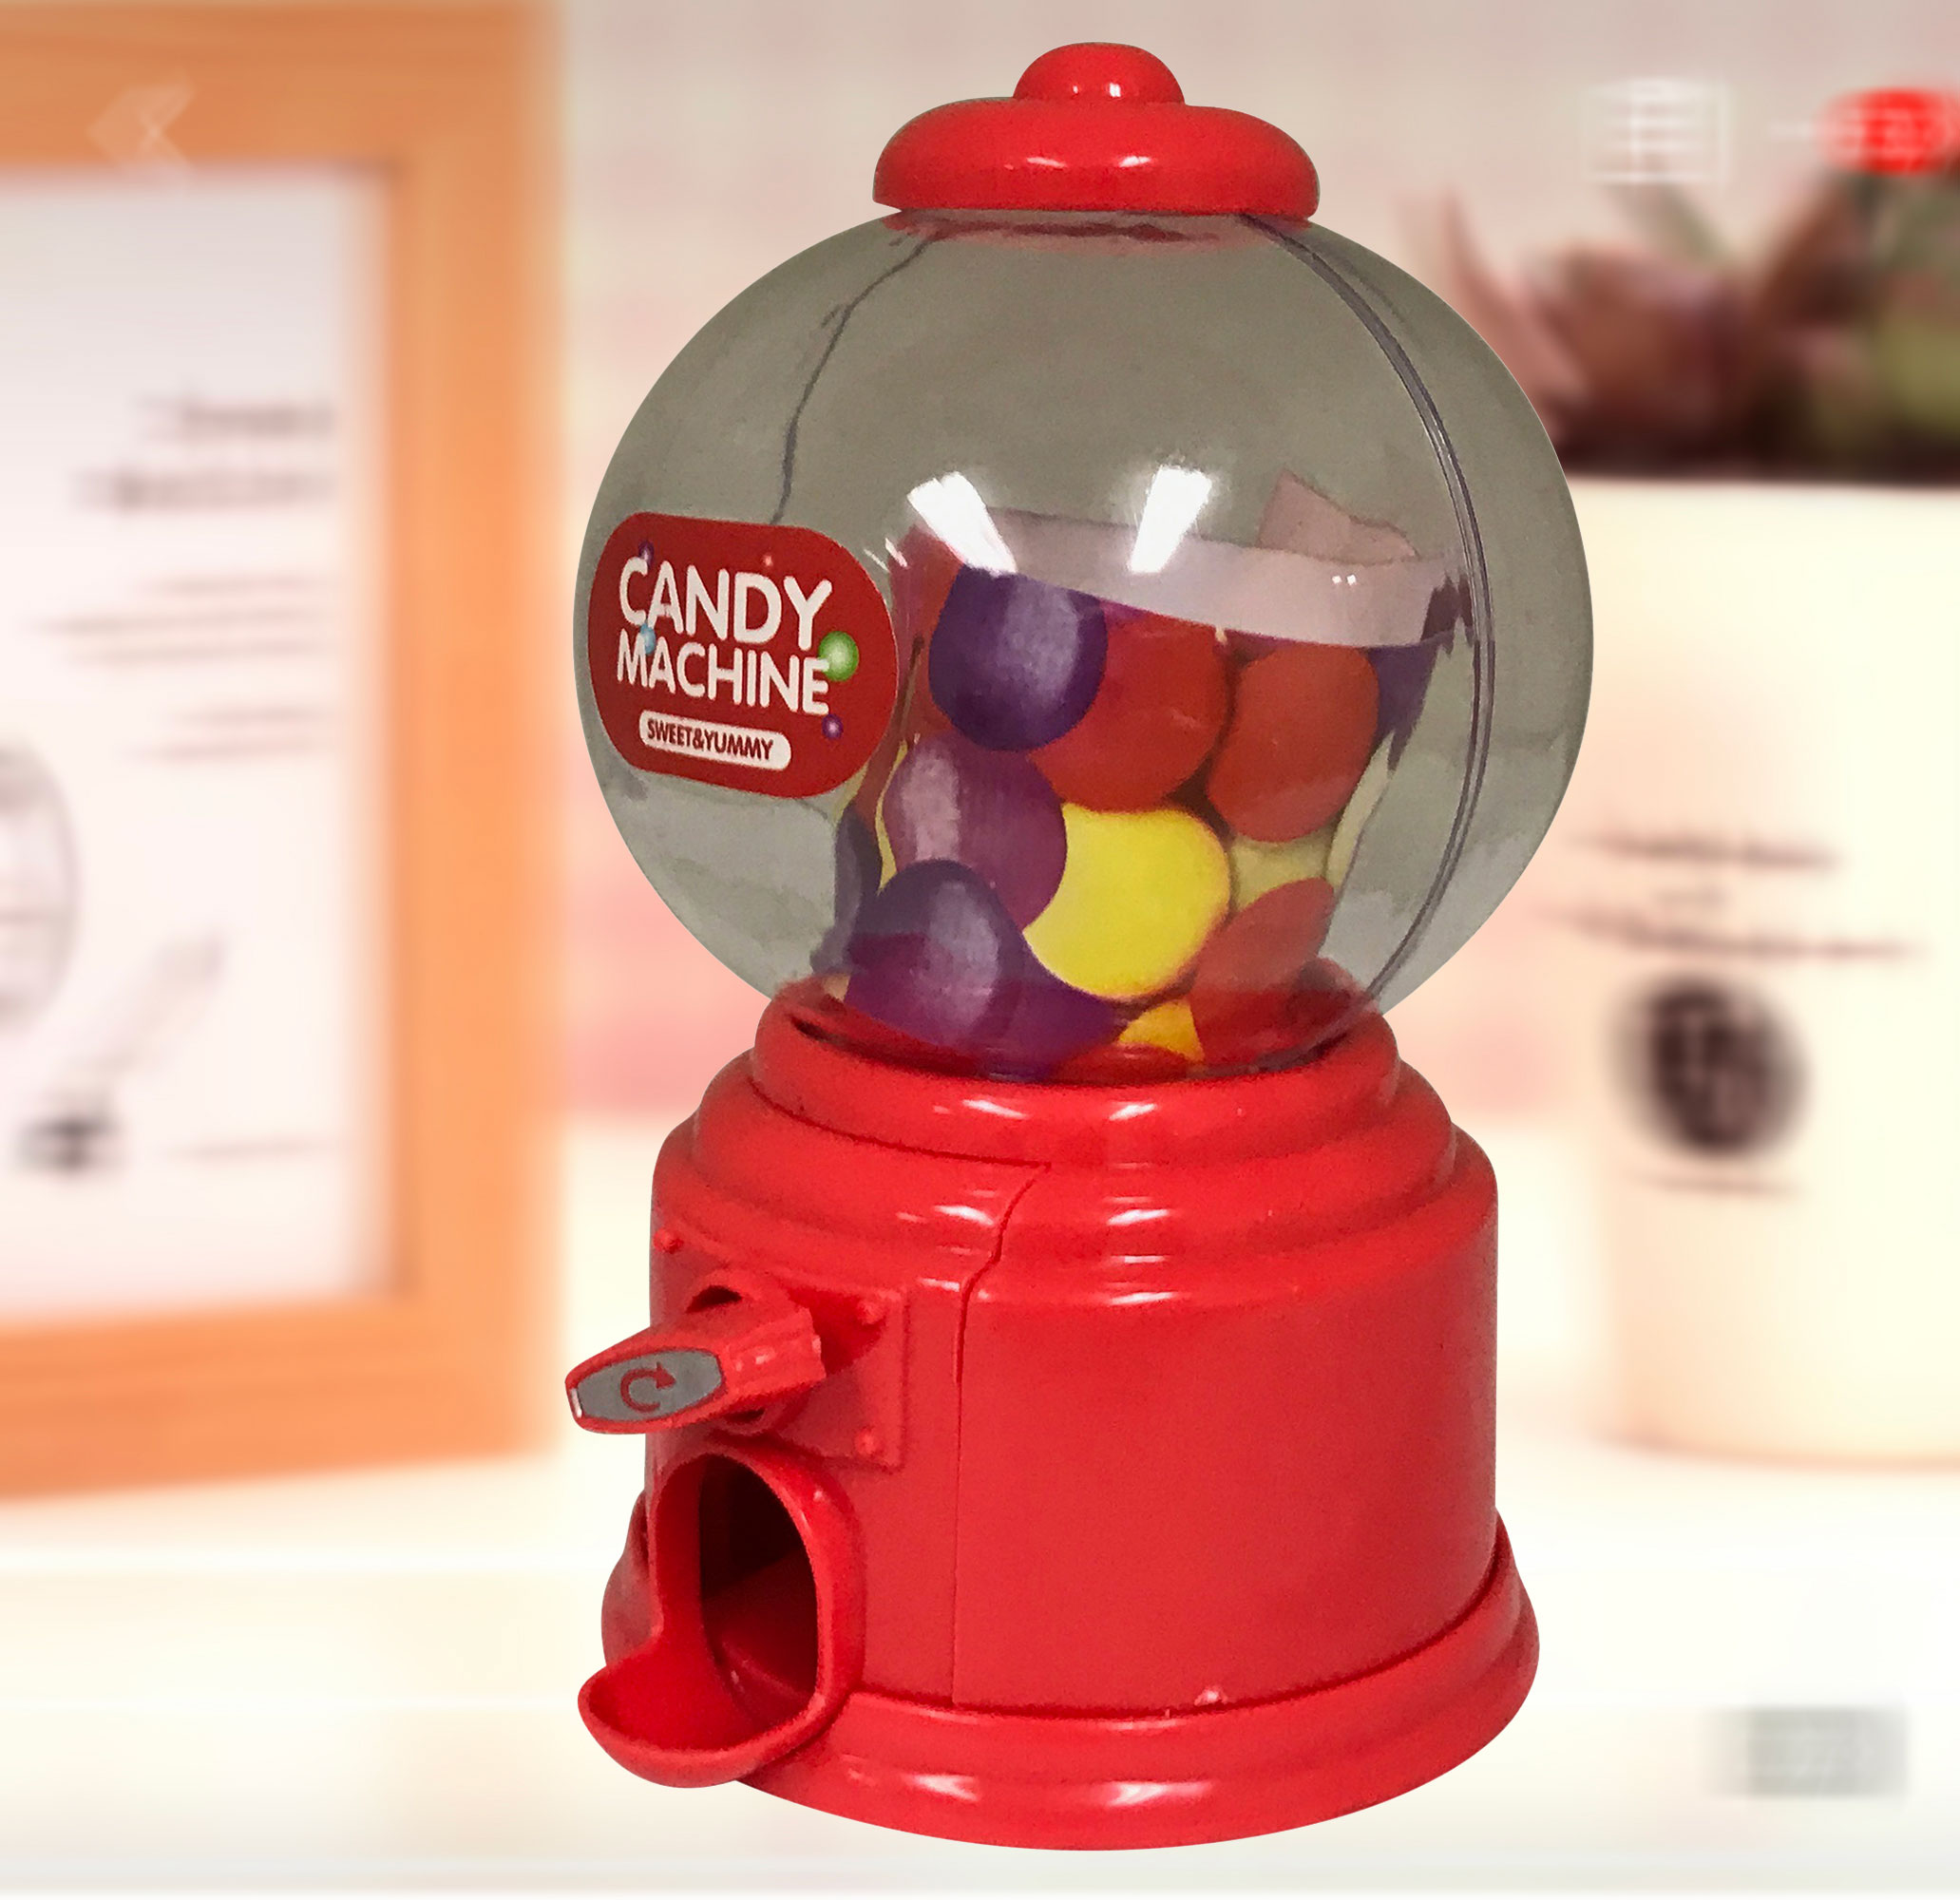 Gumball Machine. Red Candy Machine/ Dispenser. Put your favorit candies inside. Desk-top portable. Product Size: 3.5 x 6 x 3.5 ;